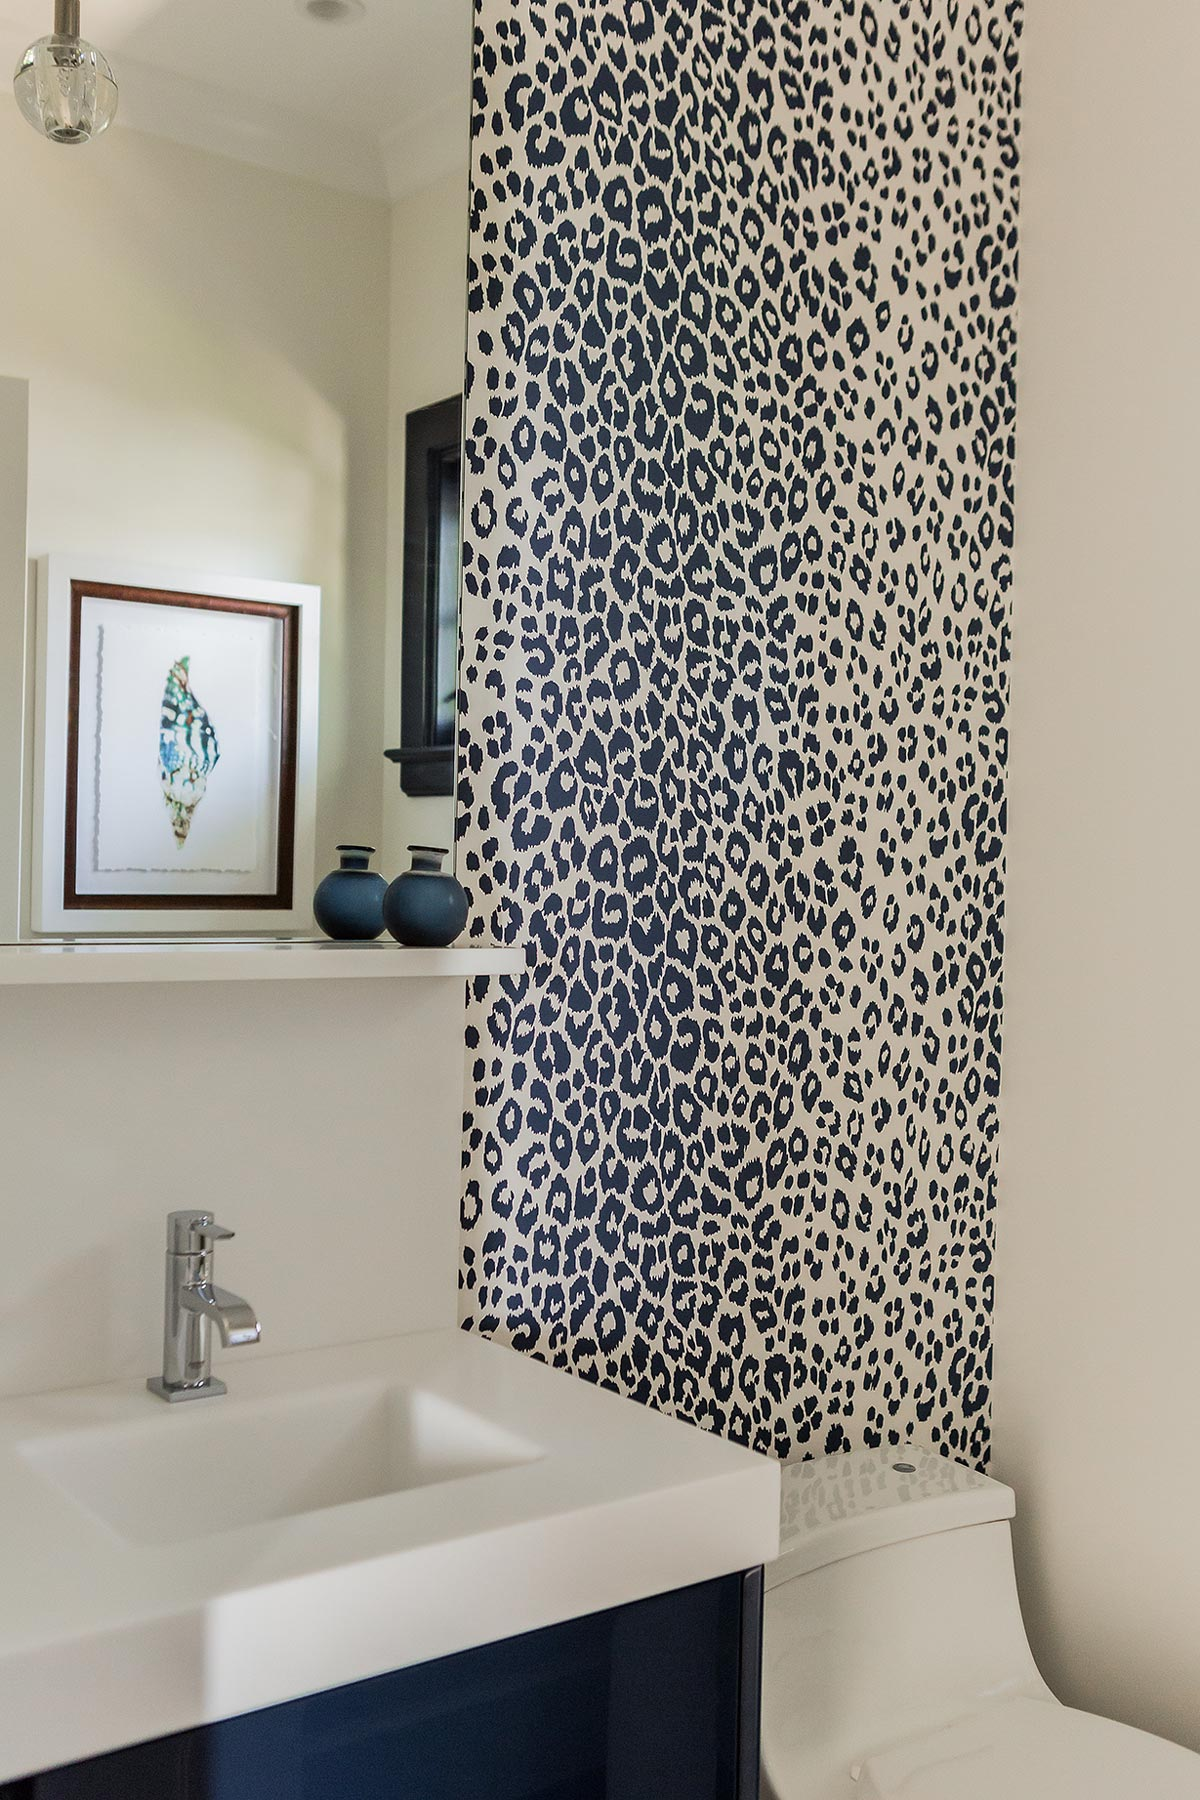 Powder Room with Navy Leopard Print Wallpaper